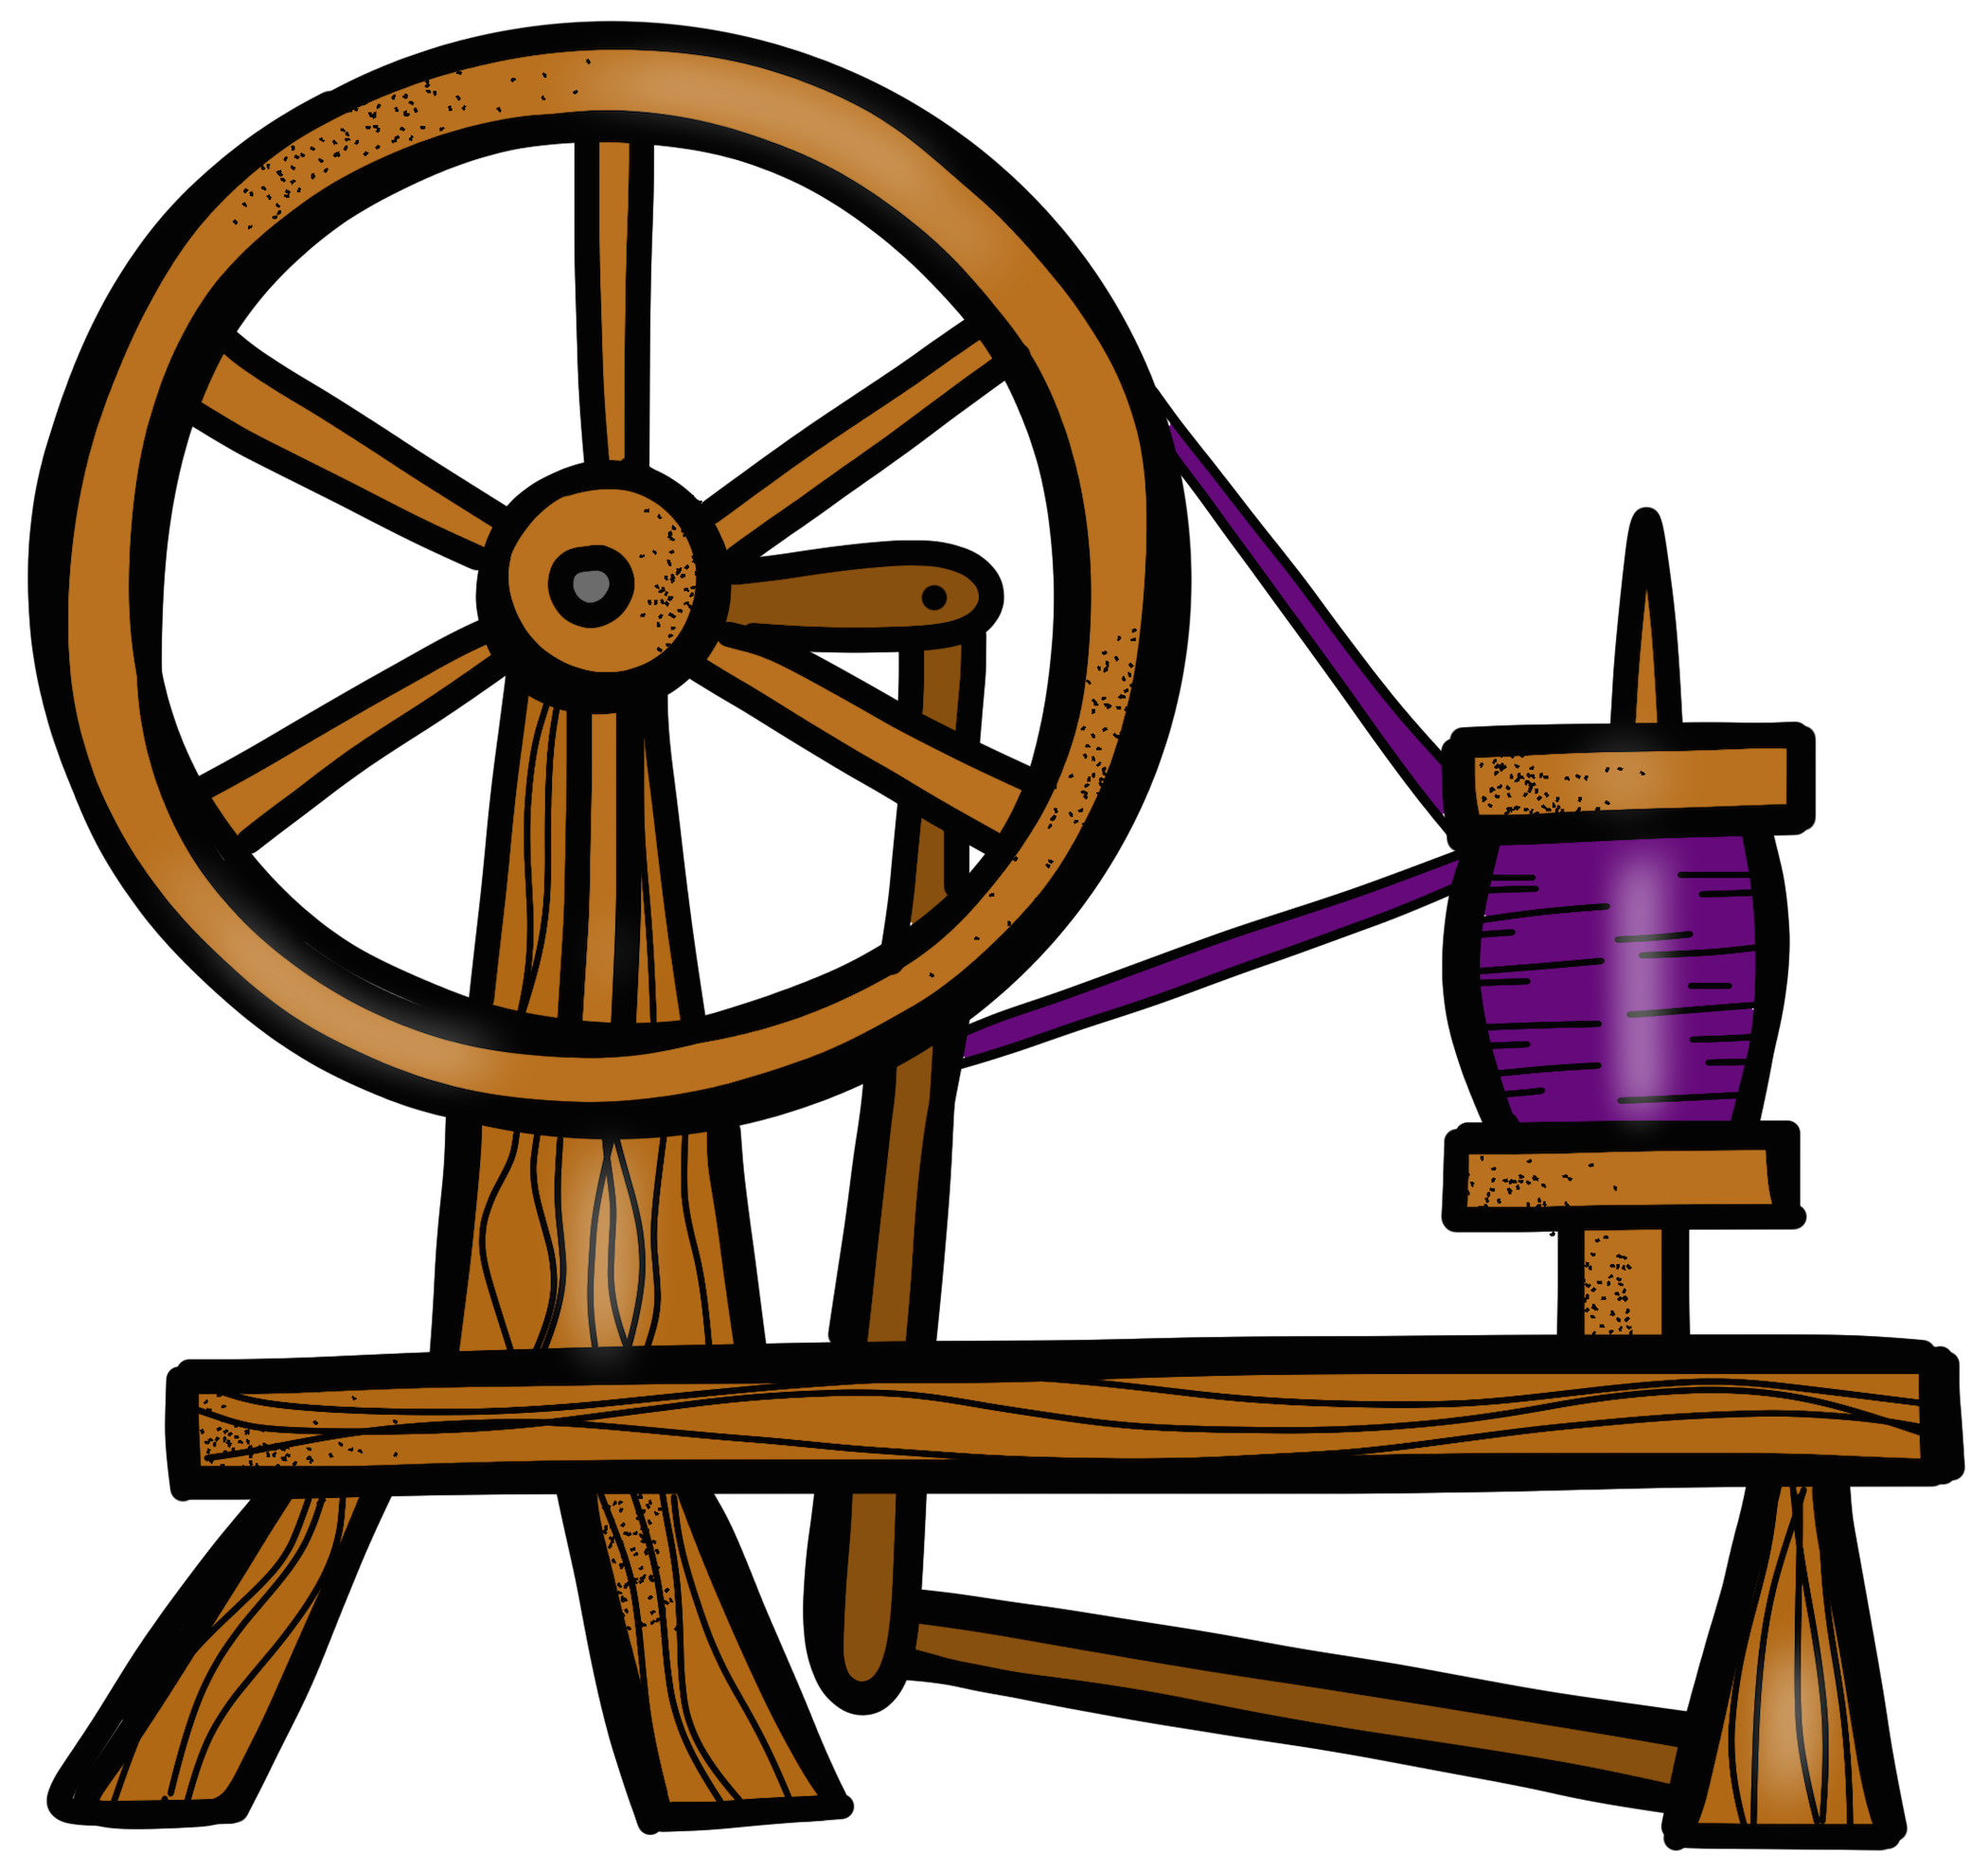 Spin clip wheel. Spinning sleeping beauty spindle